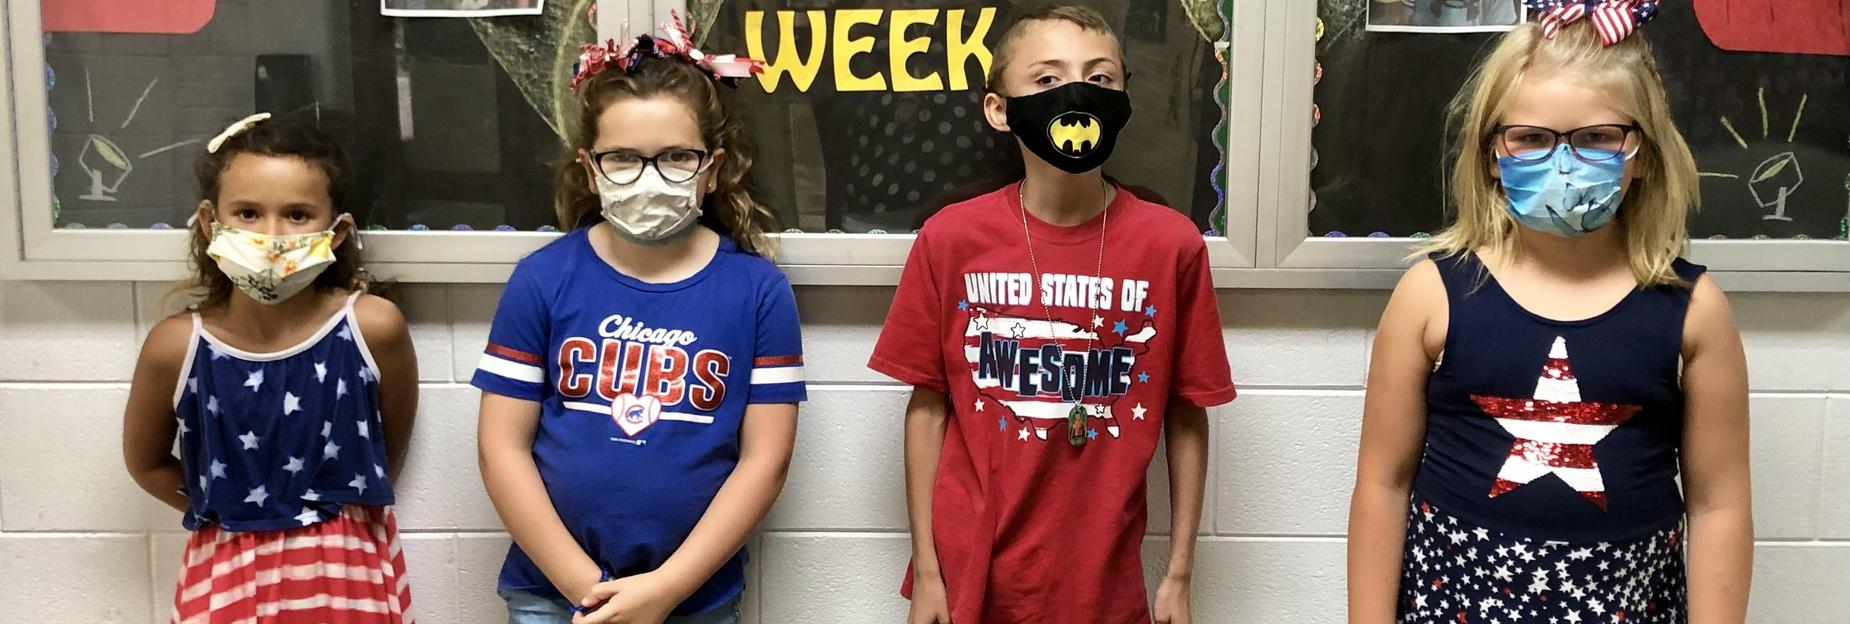 Patriot day had a lot of participation